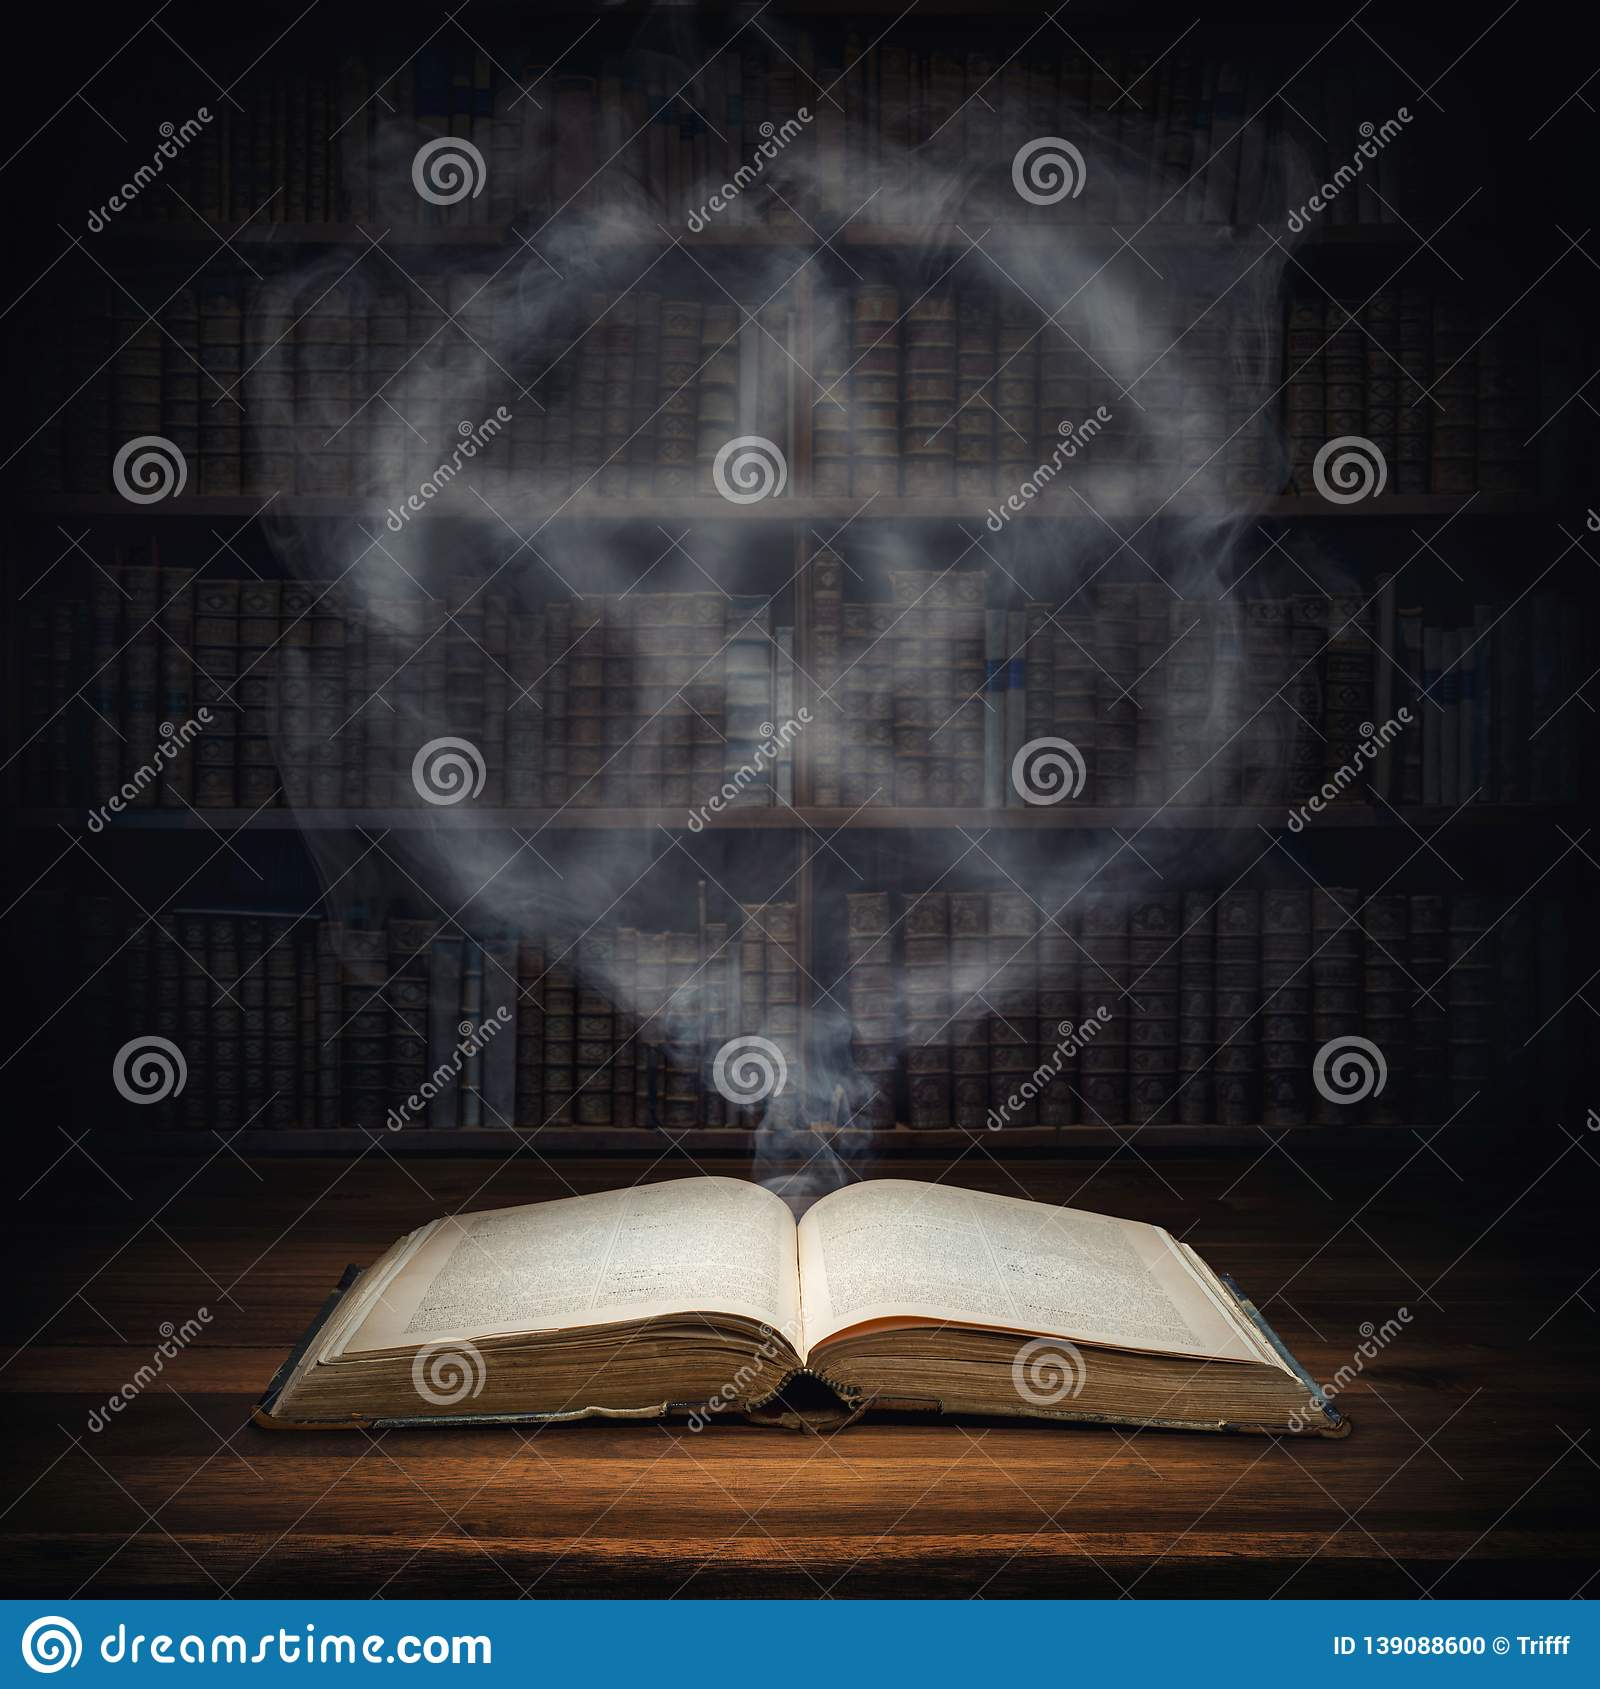 The Old Mysterious Book And The Smoke Coming Out Of It Is A